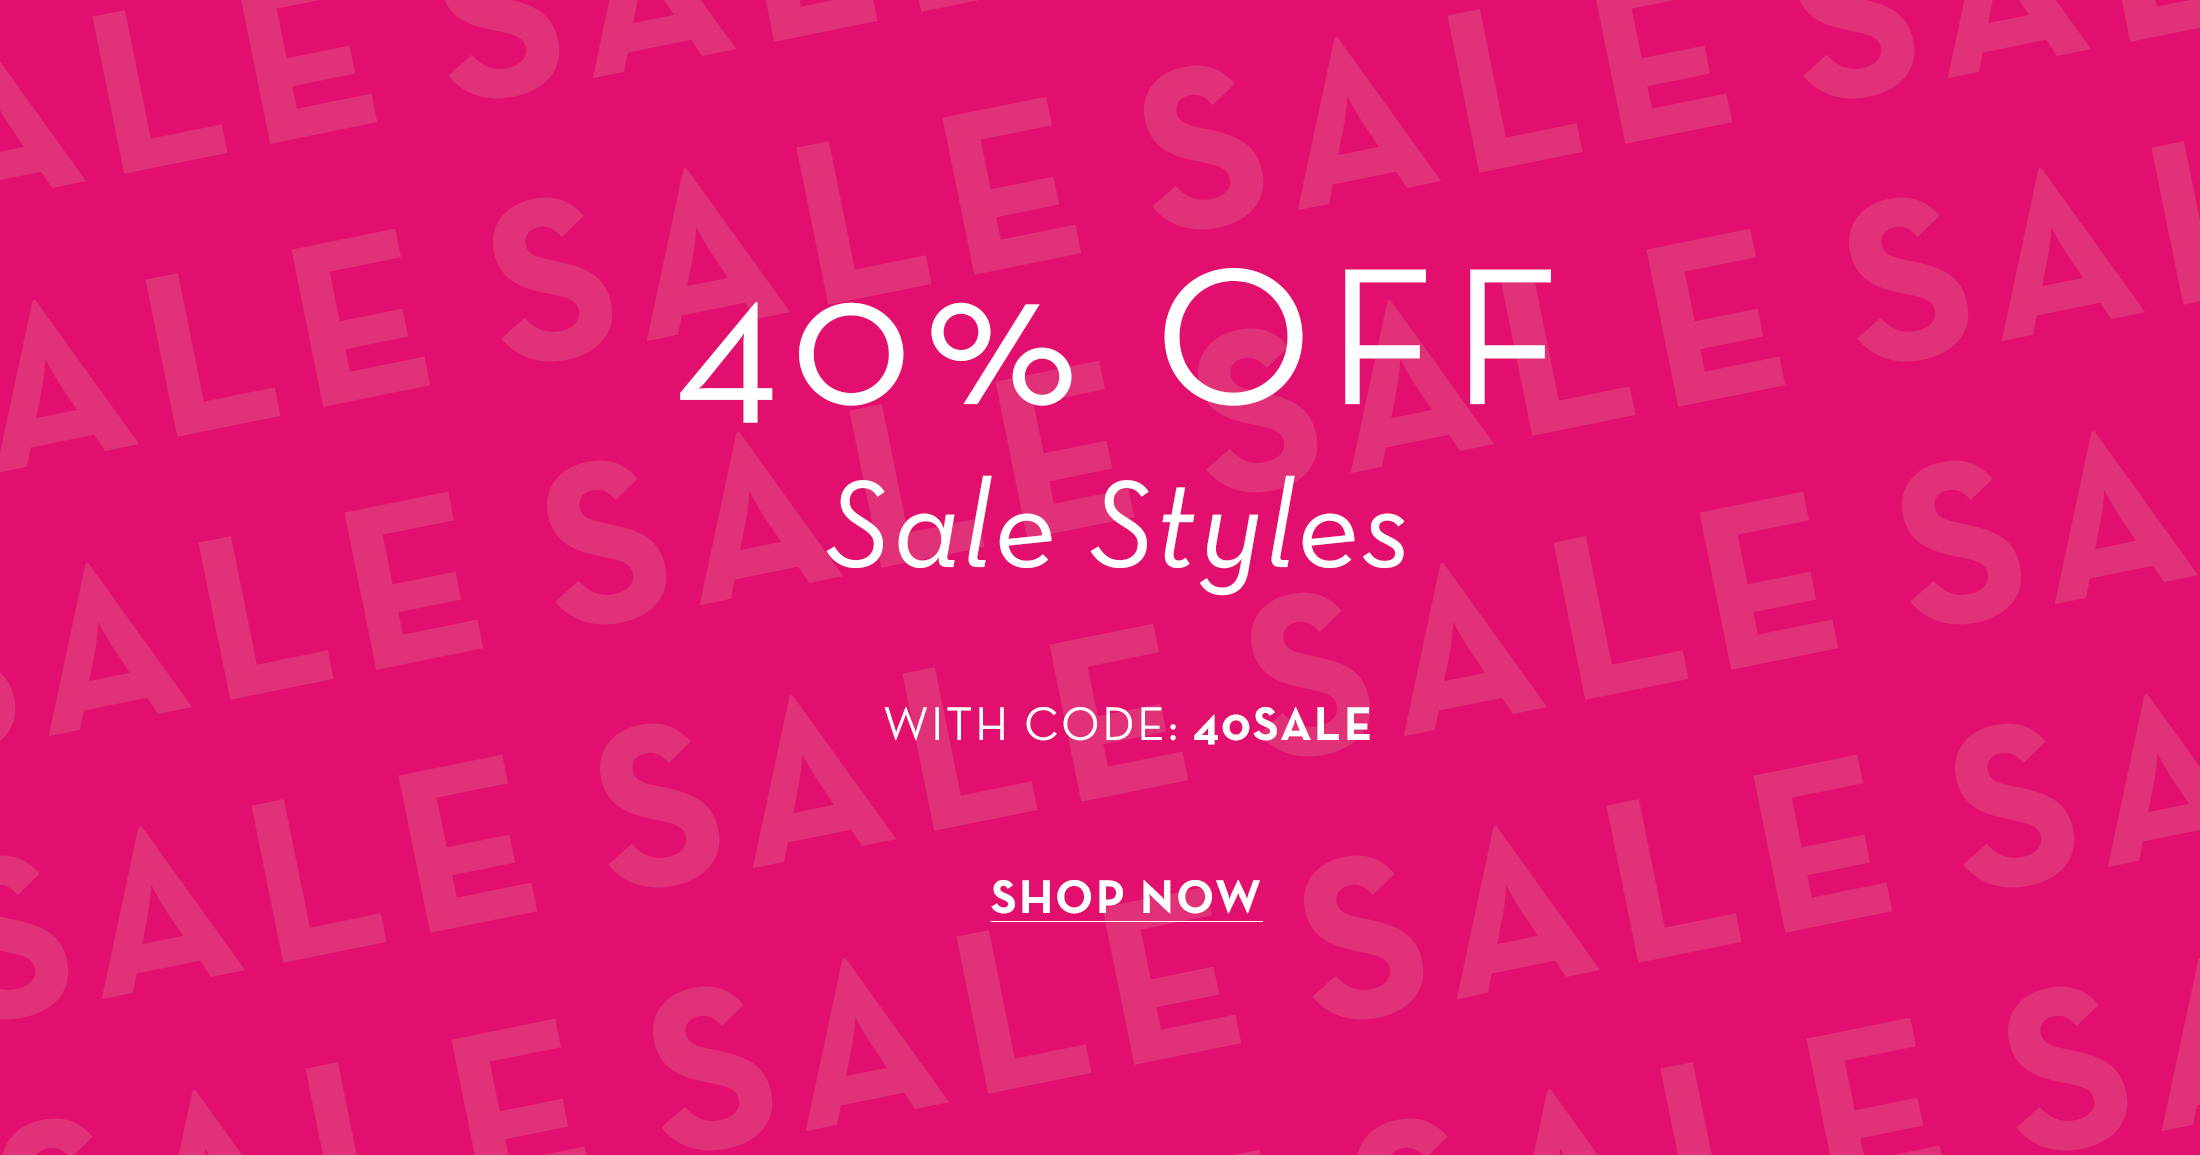 40% off sale styles with code 40sale, shop now